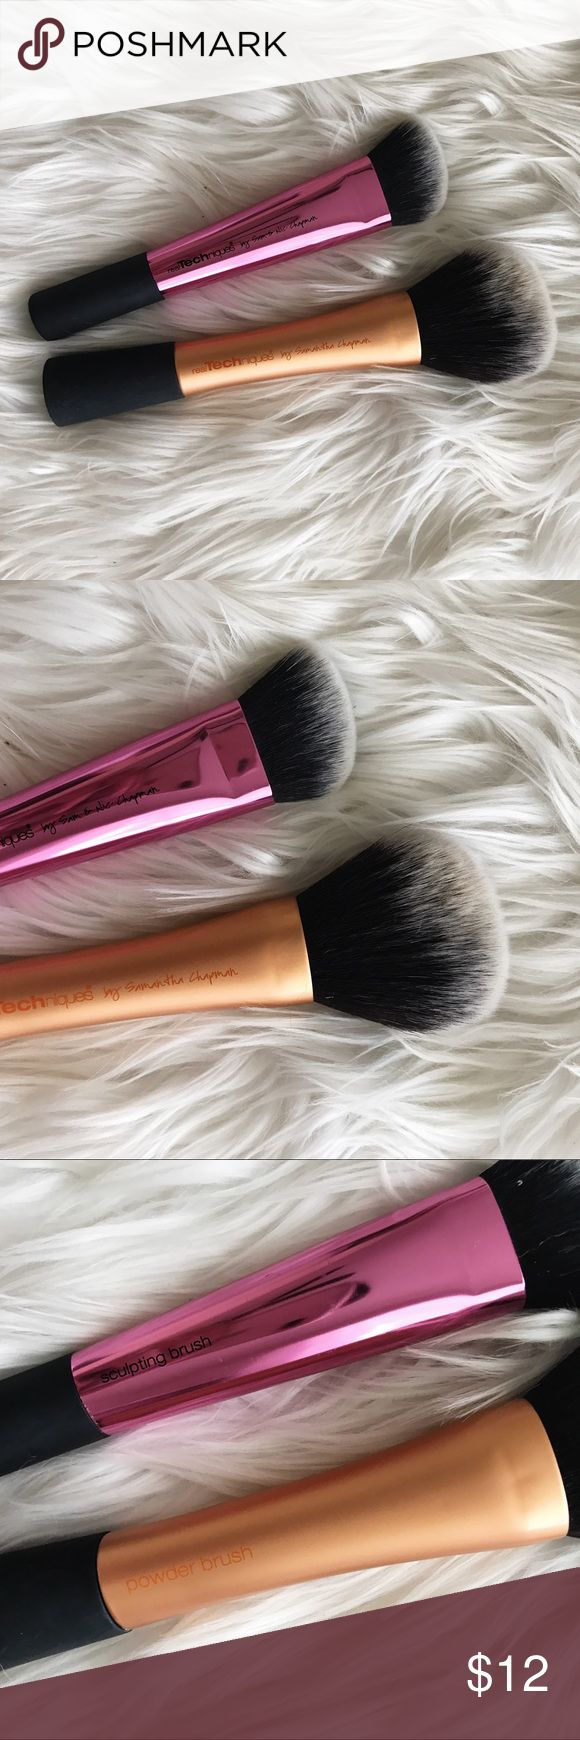 Set of 2 Real Techniques Face Brushes • brand: real techniques  • condition: used only once each  • size: sculpting brush + powder brush   • bundle to save 💰 + accepting reasonable offers • happy shopping! Real Techniques Makeup Brushes & Tools